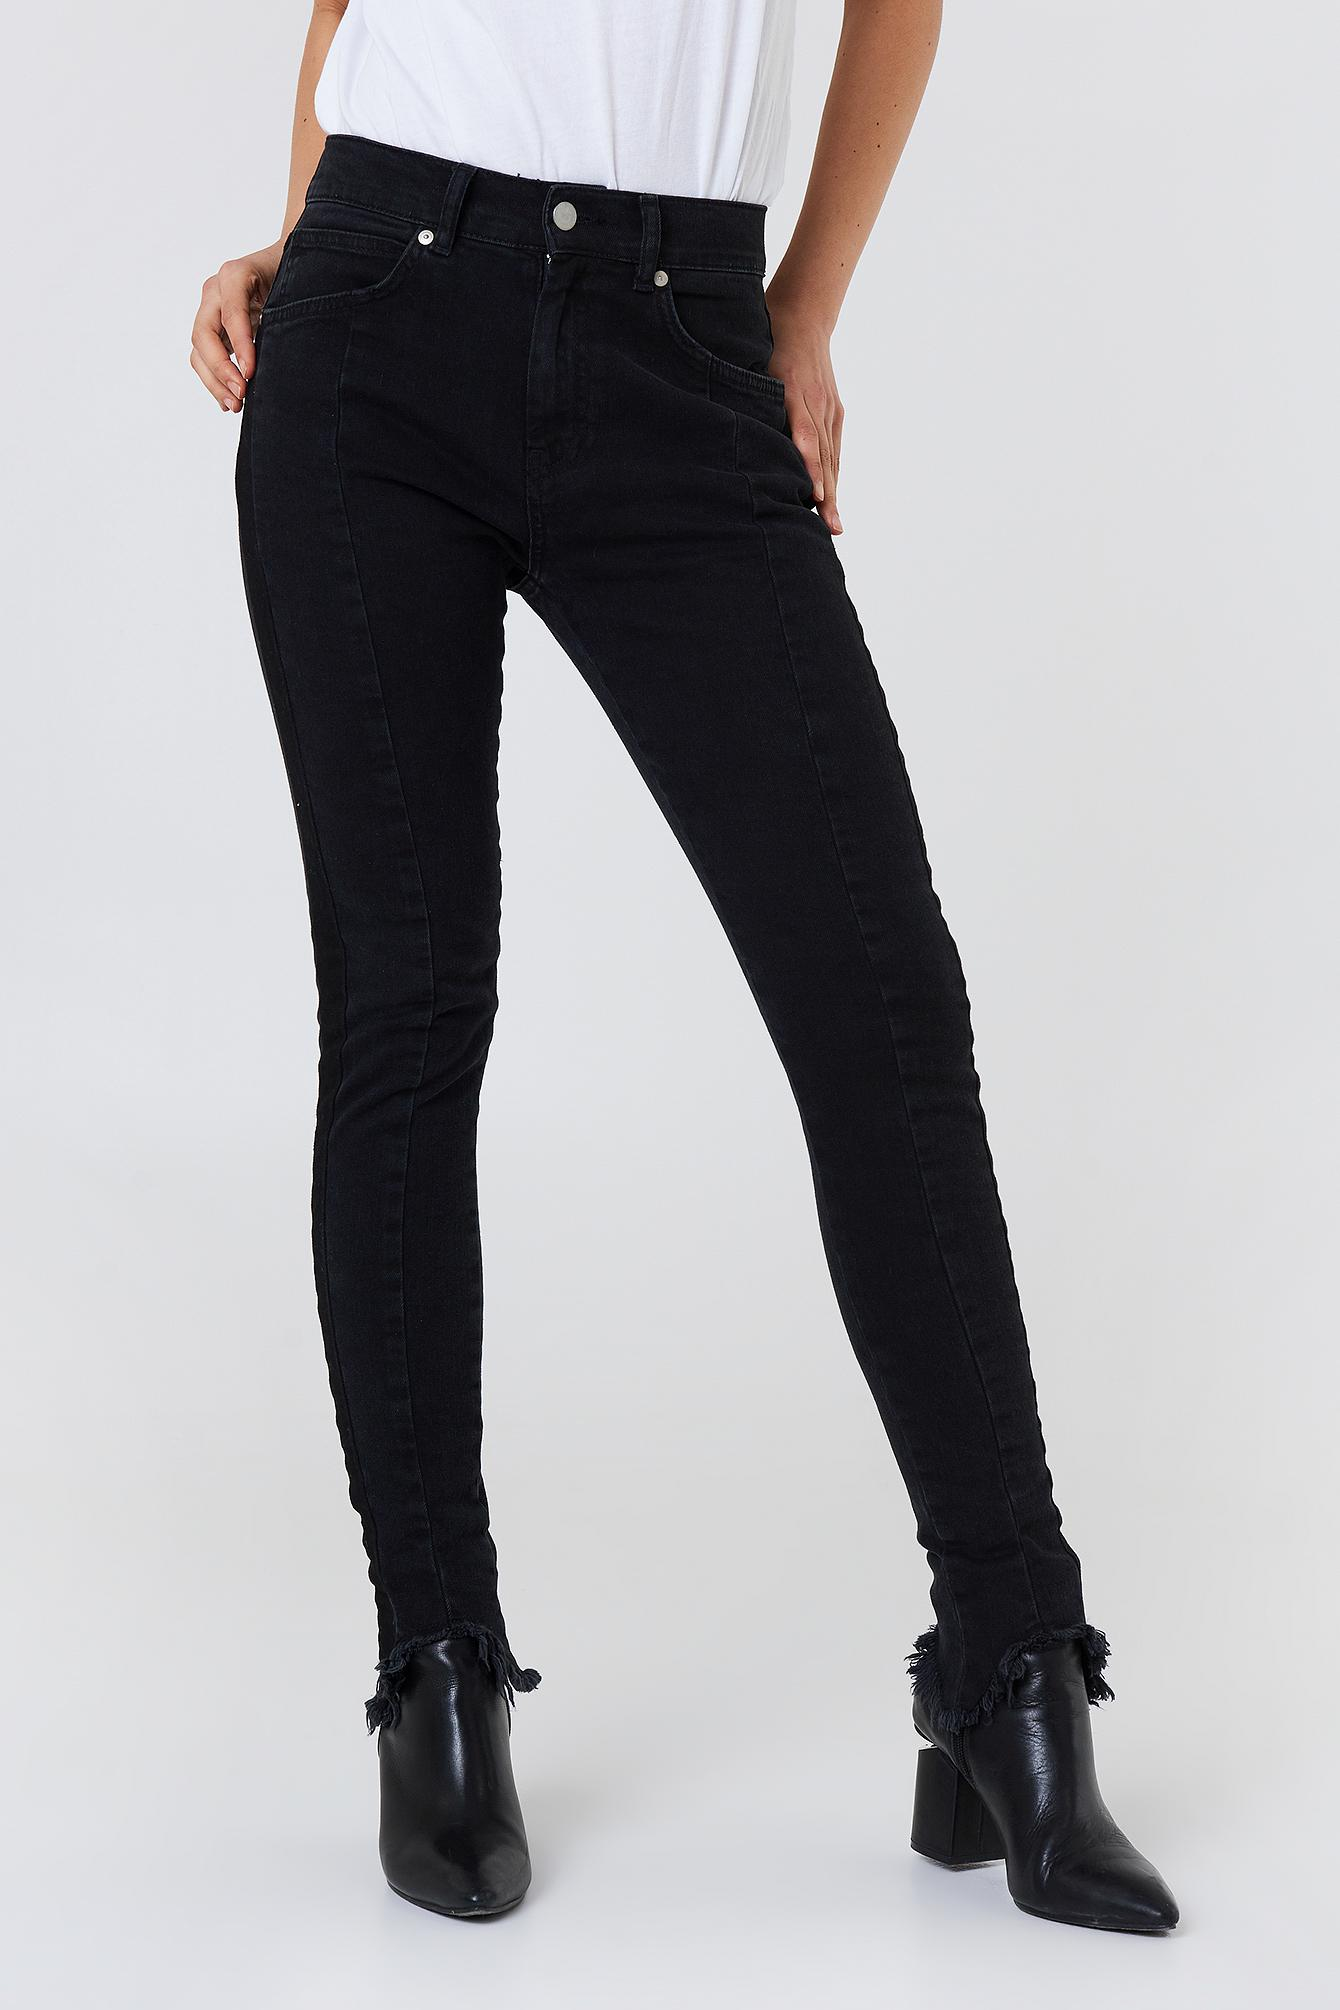 cfb6a2fd99a NA-KD Rounded Hem Panel Jeans Black in Black - Save 50% - Lyst